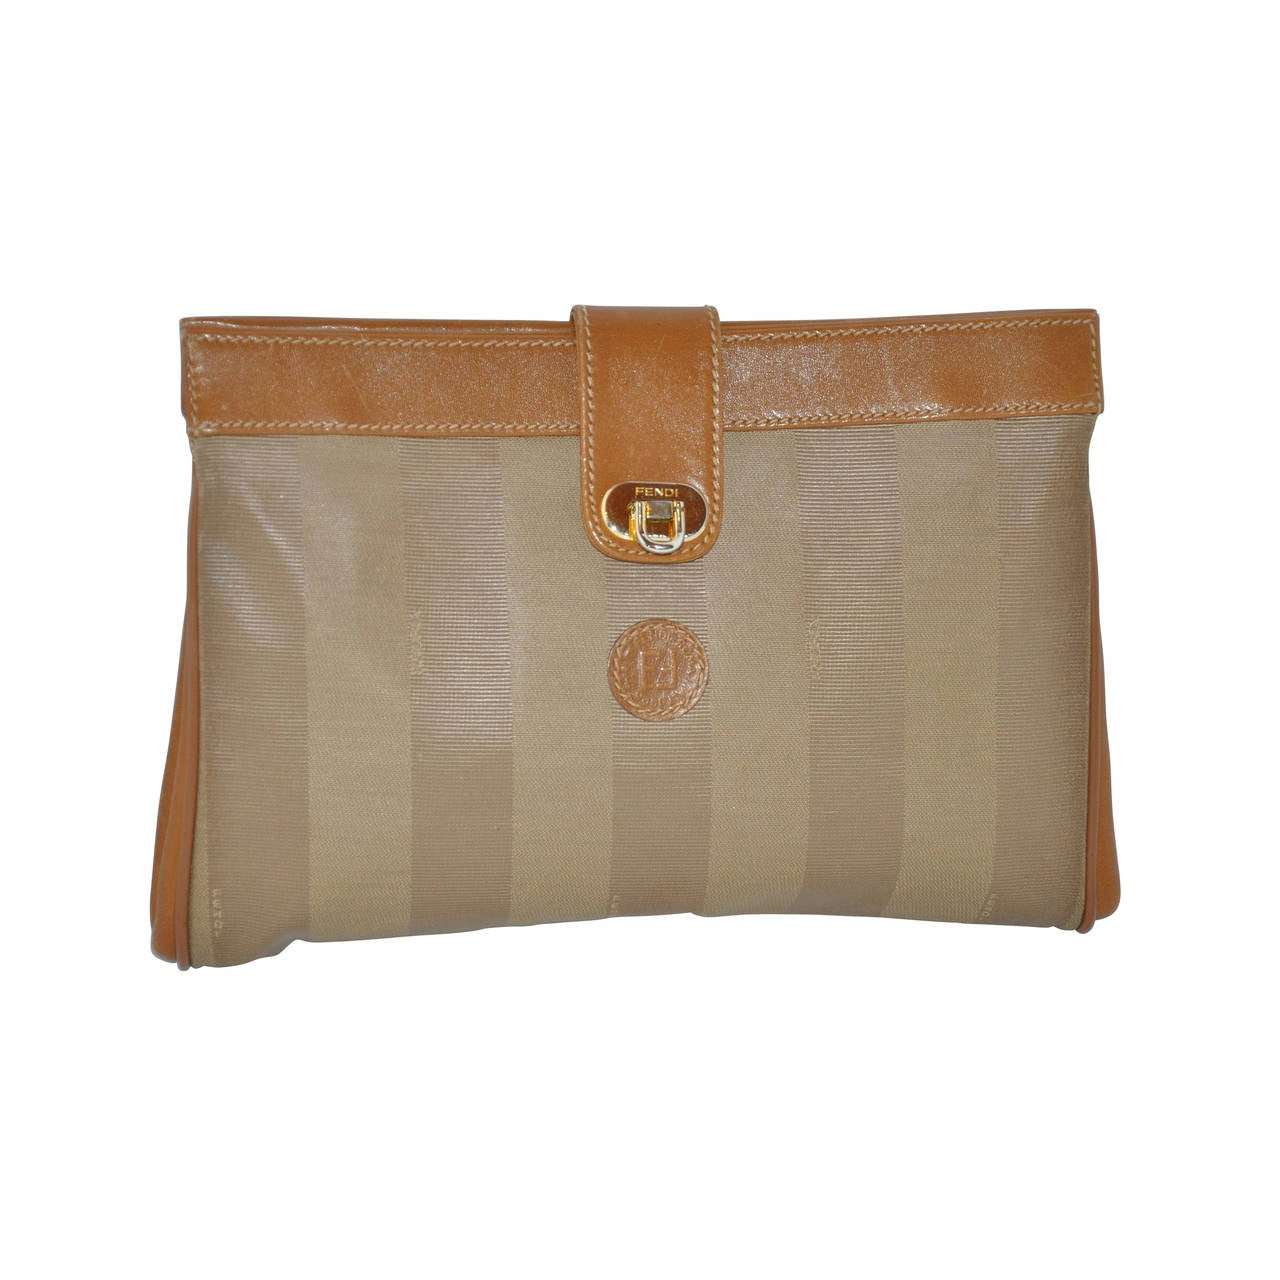 Fendi Beige Calfskin Combined with Textured Silk Monogram Clutch